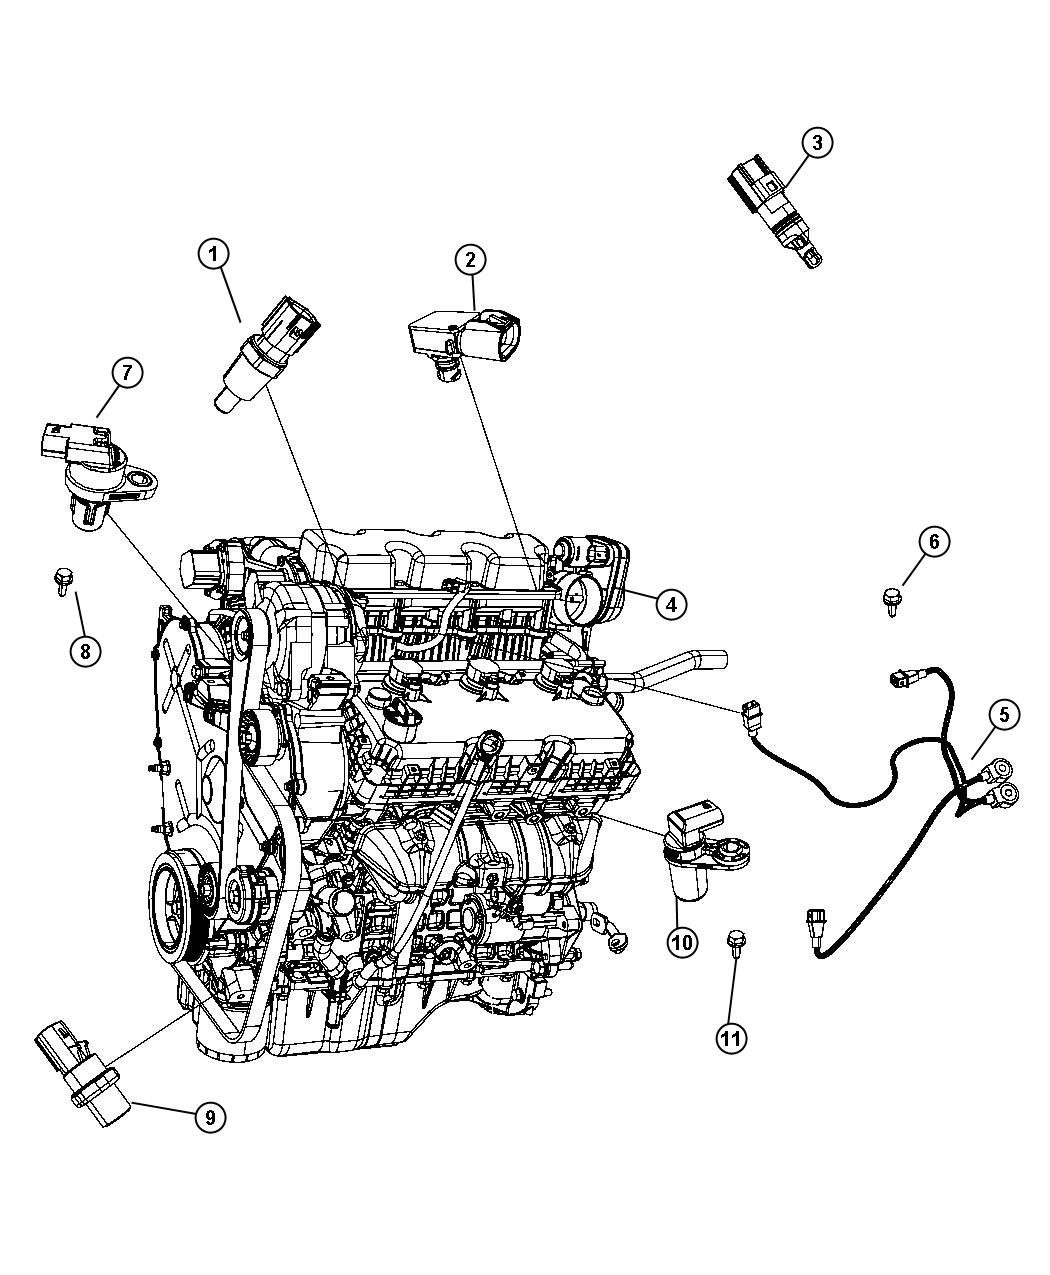 P 0996b43f80e6445a likewise Volvo Ambient Air Temperature Sensor Location in addition 2004 Dodge Ram 1500 Belt Routing Diagram likewise 2005 Chrysler Town And Country Parts Diagram Rear Suspension also Dodge 1500 Heater Thermostat Location. on dodge caravan water pump